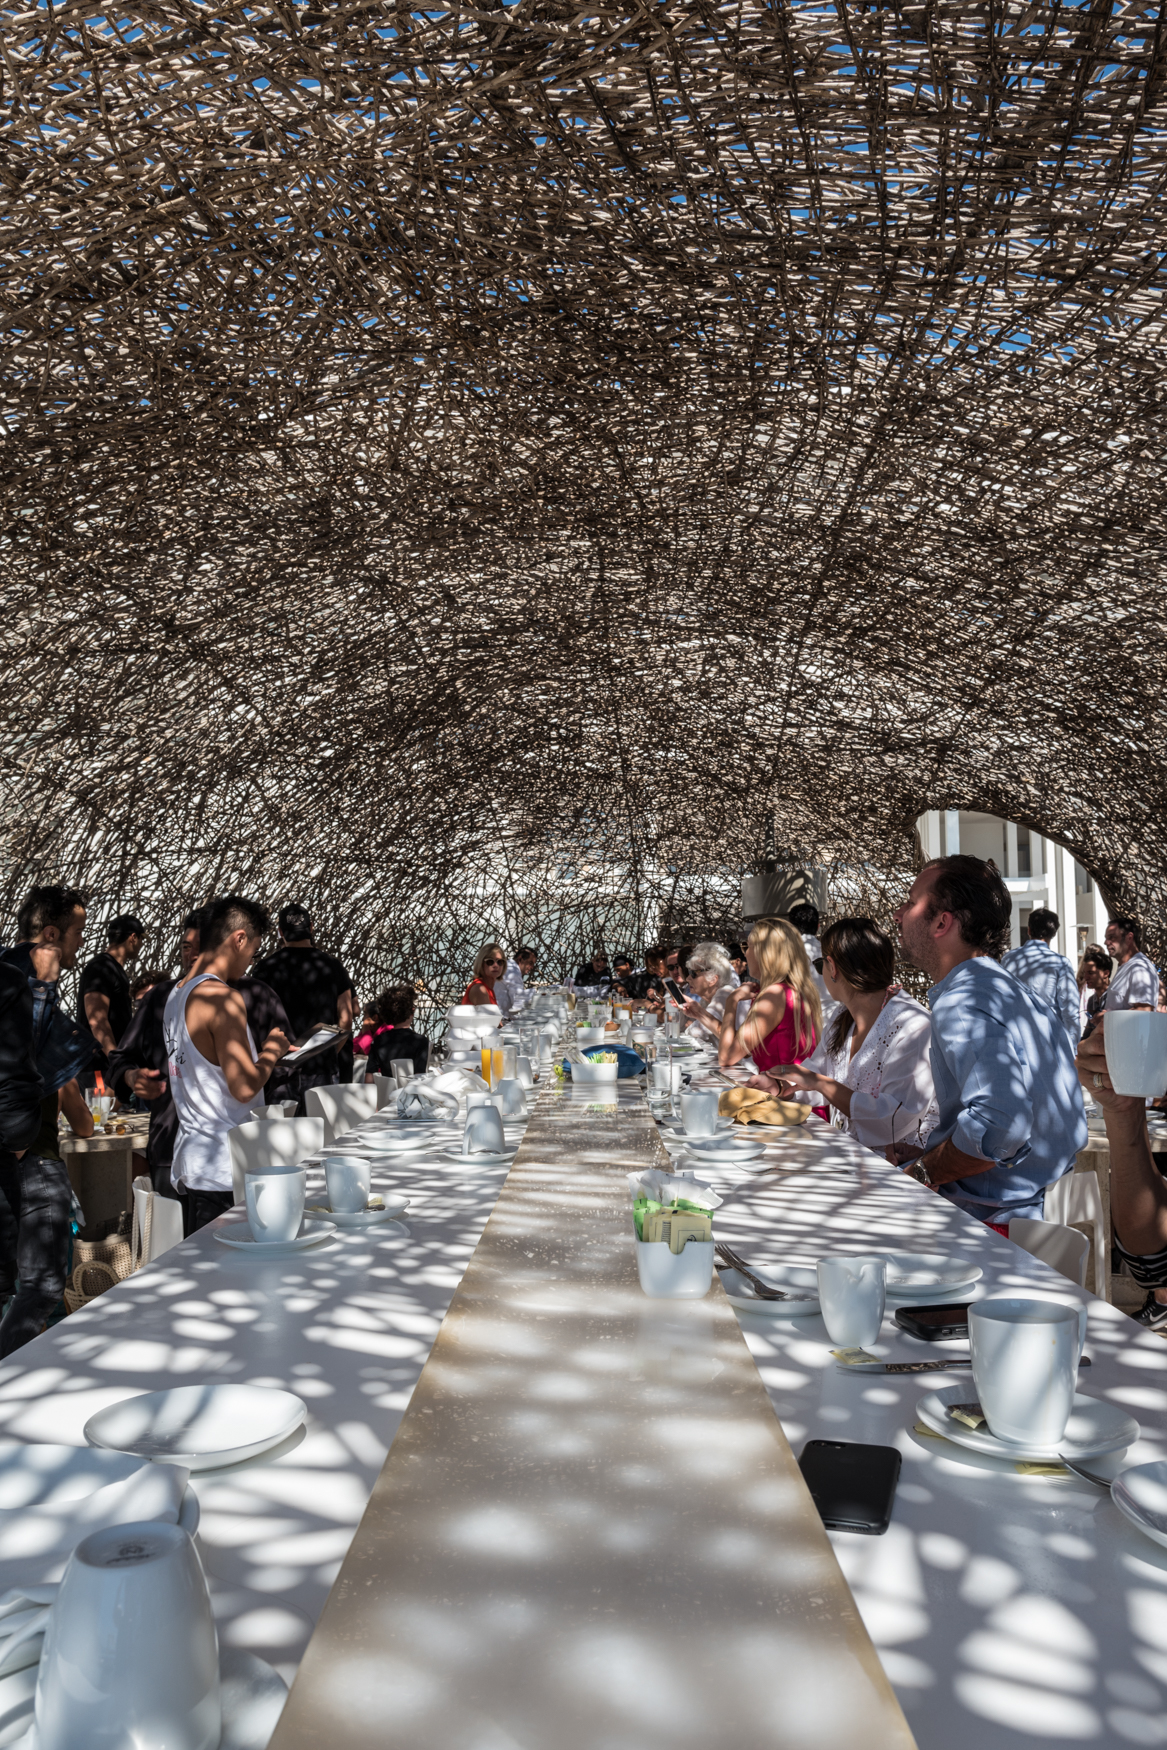 Breakfast in the Nest at Mar Adentro